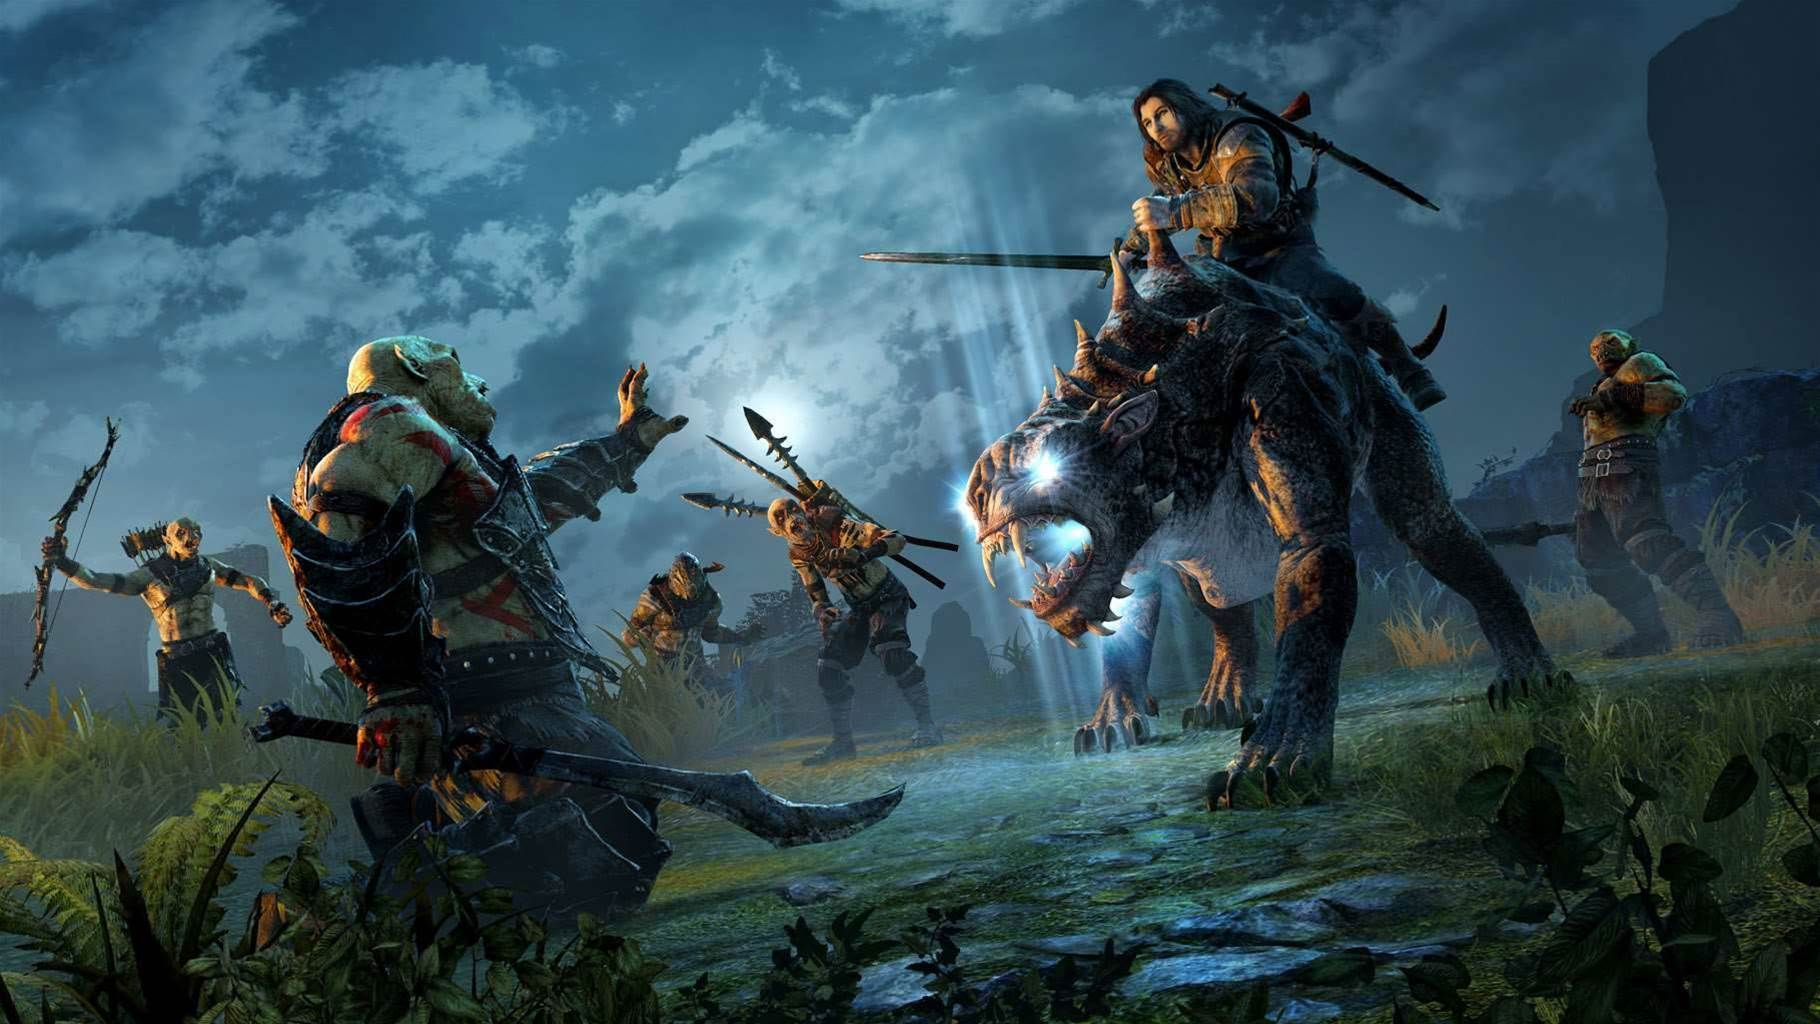 Four new screens from Shadows of Mordor